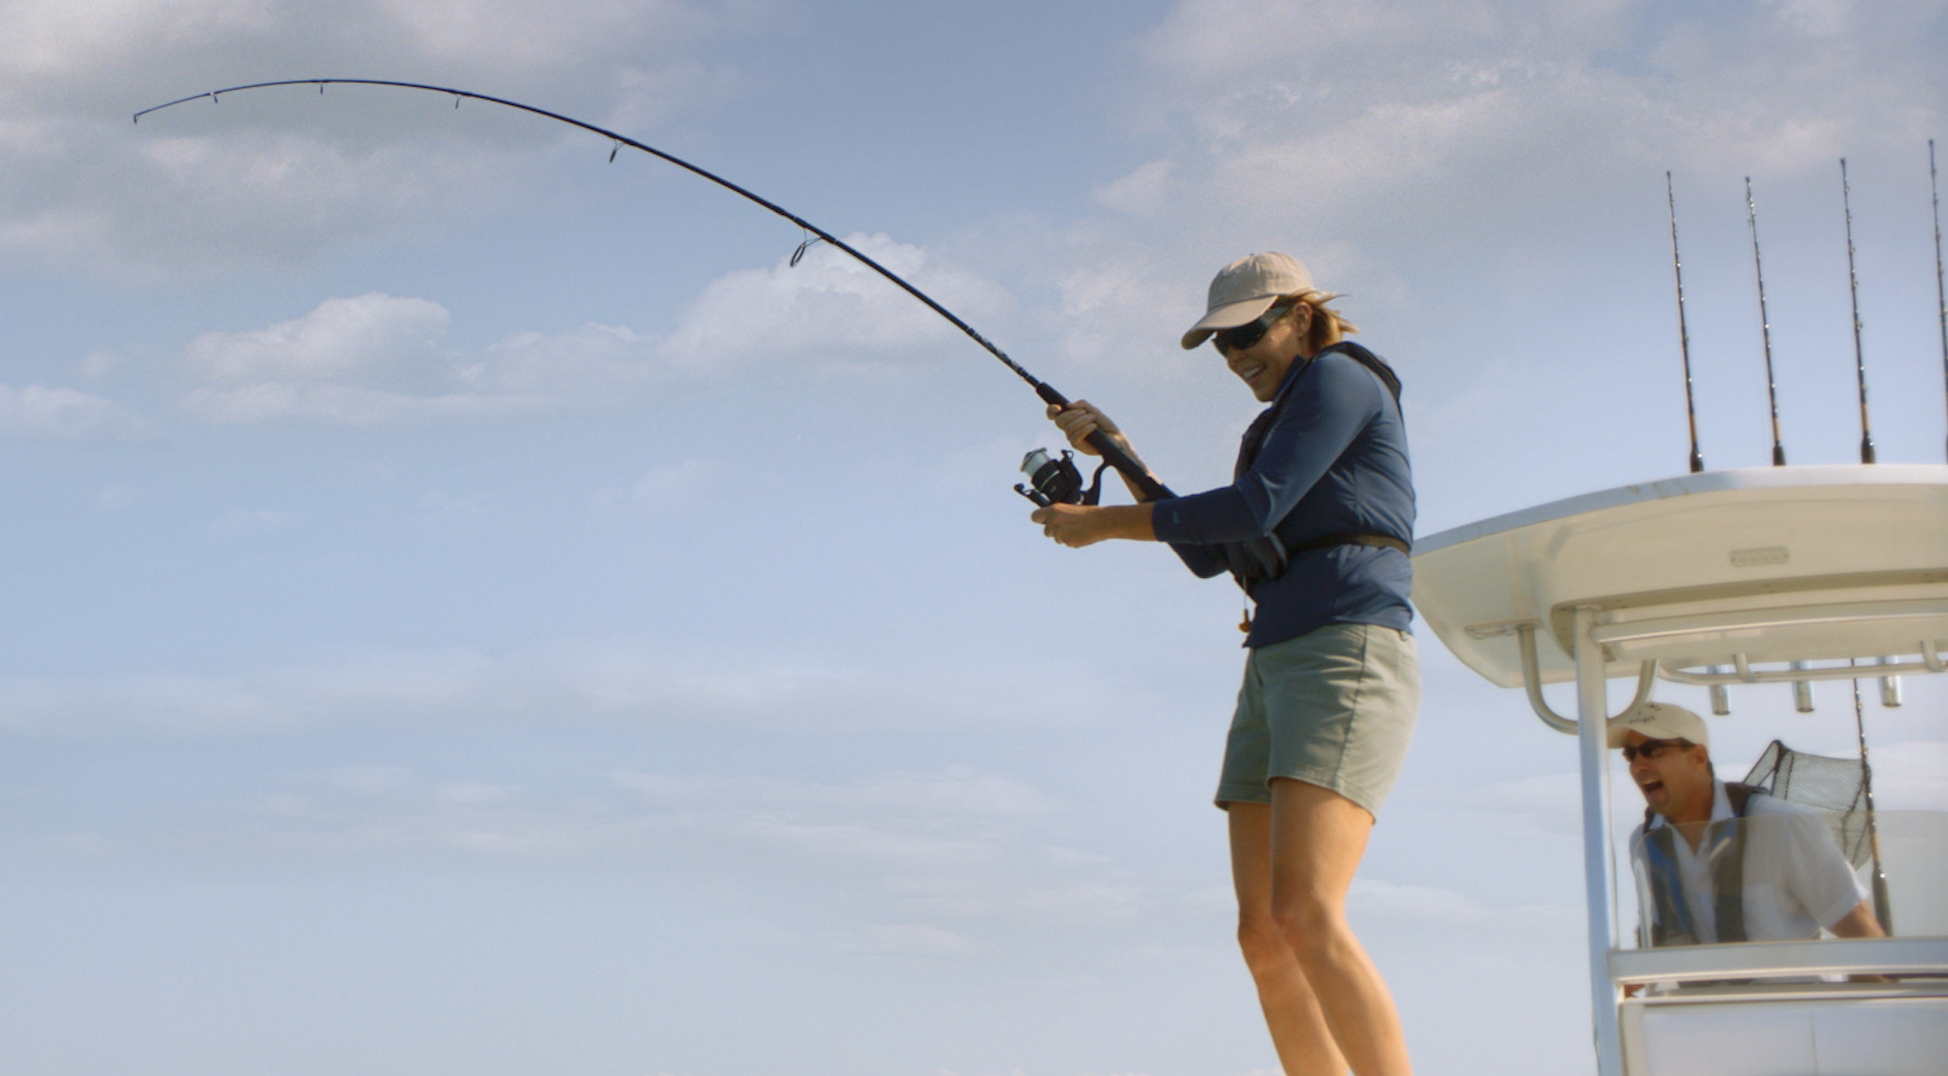 Support the Biscayne Fishery National Park Management Plan